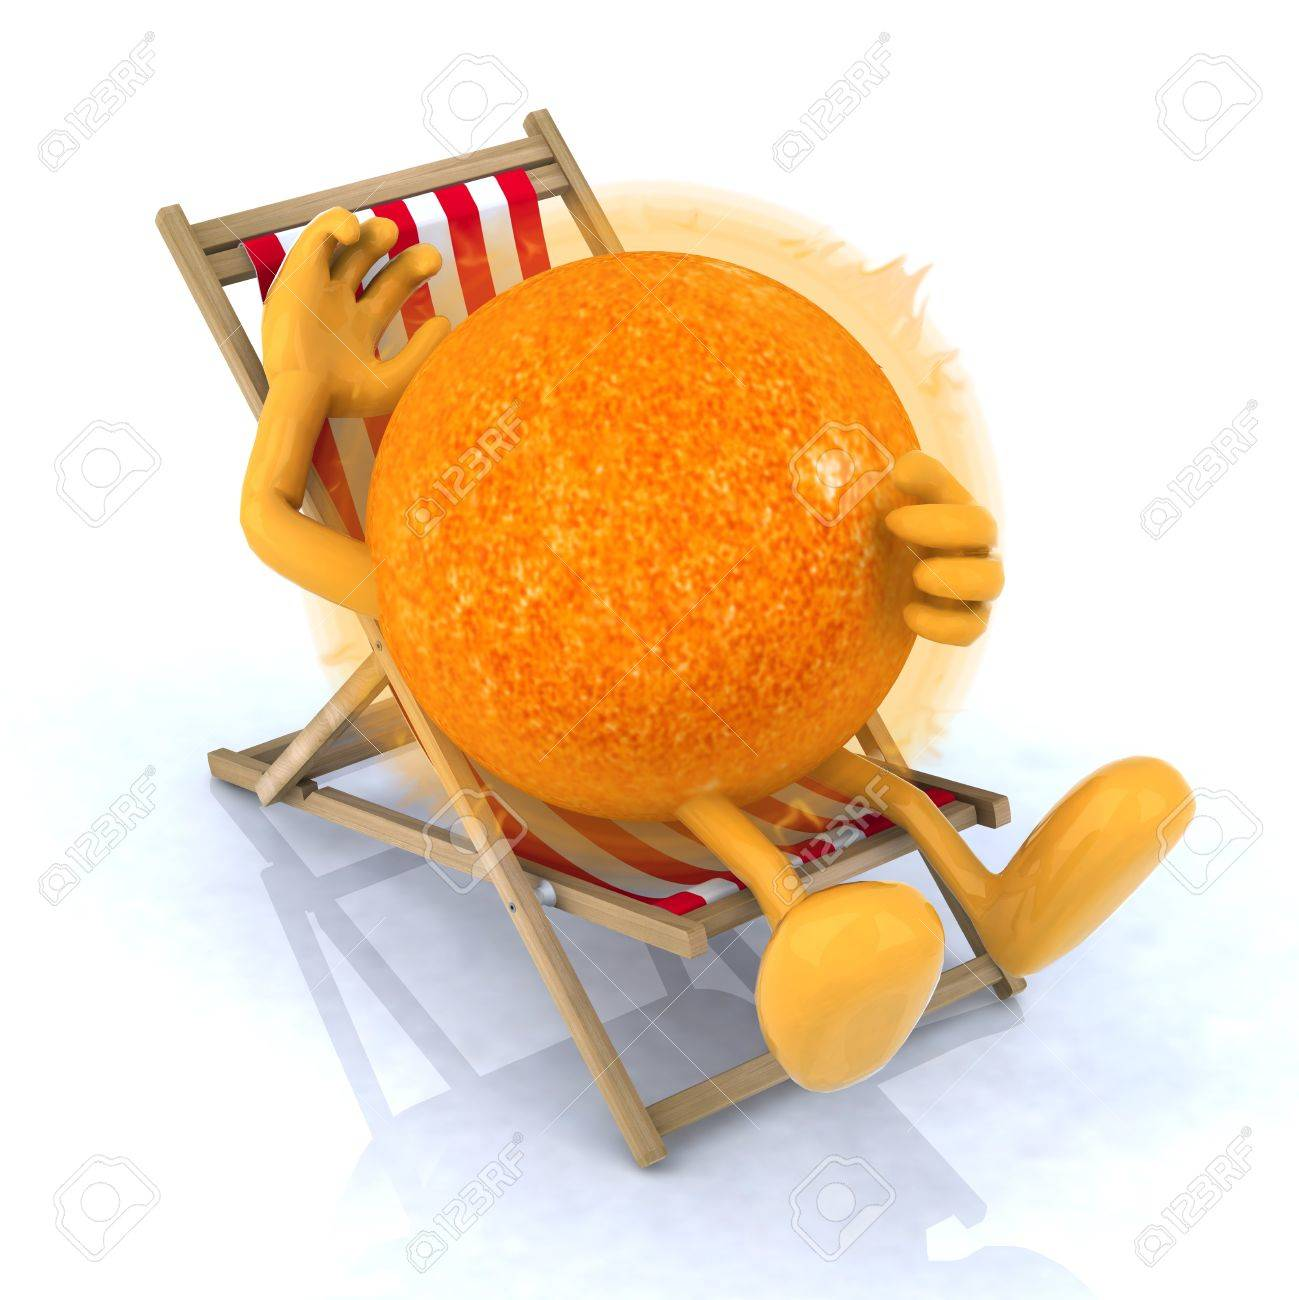 the sun with arms and legs lying on beach chair, 3d illustration Stock Photo - 16903895